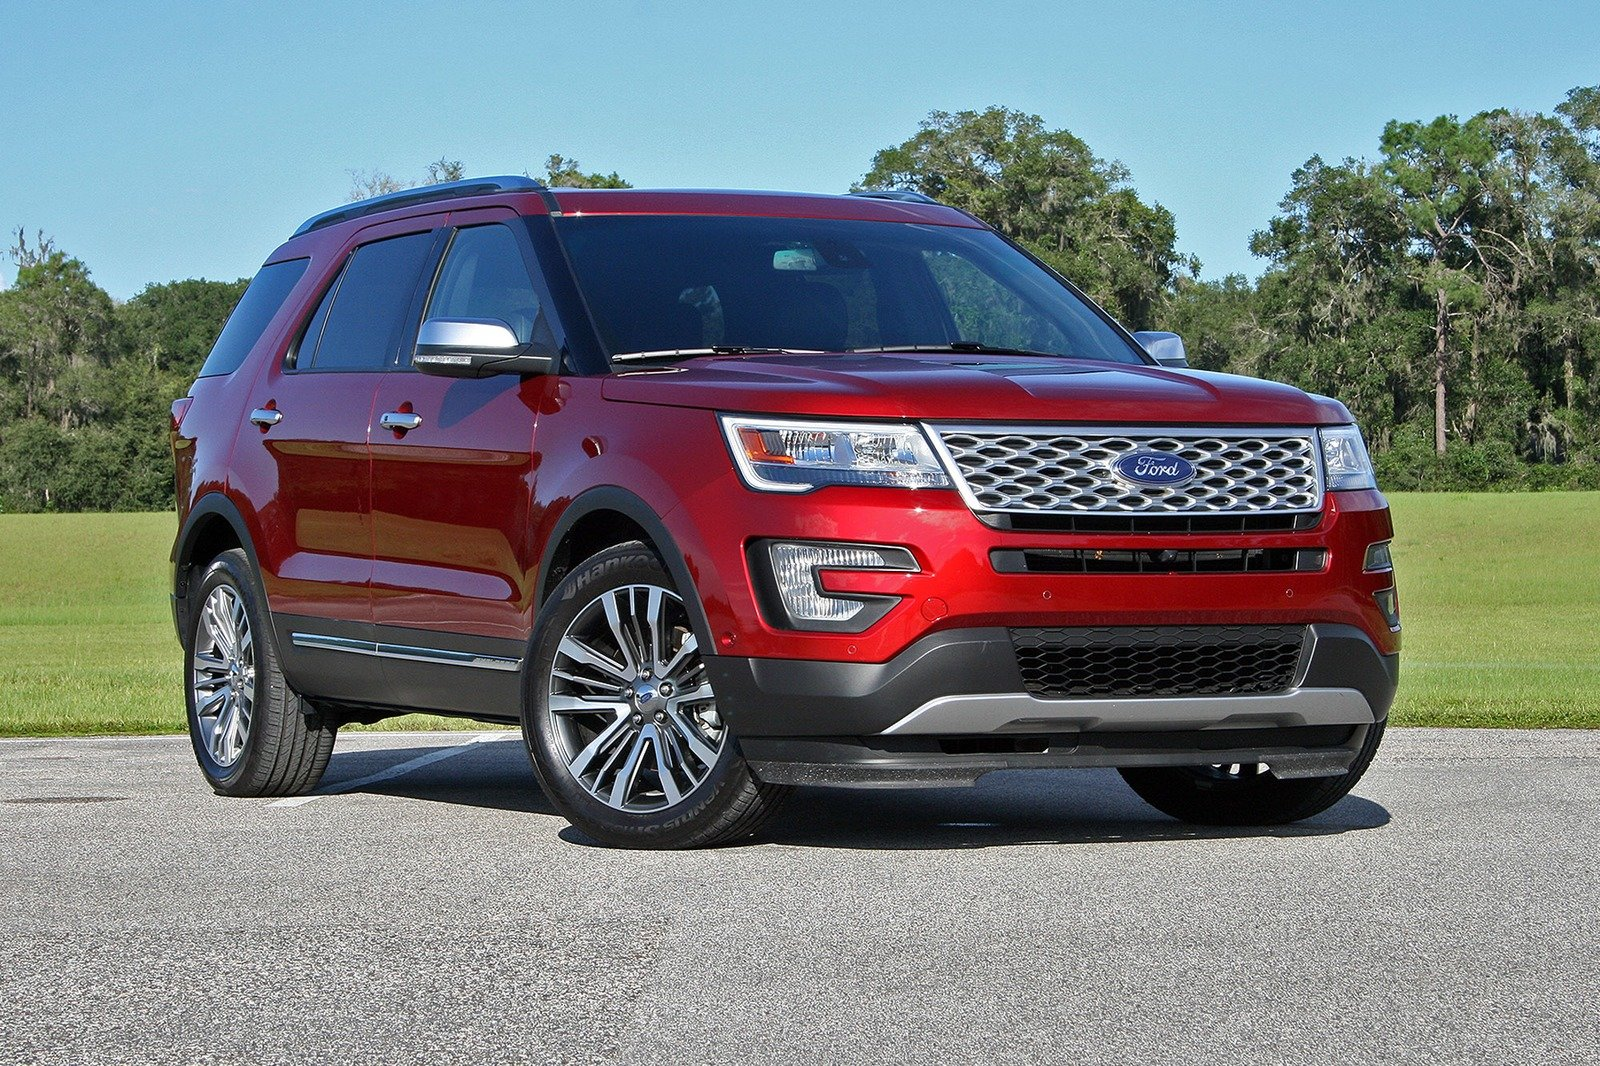 2019 Ford Escape >> Ford Tries To Be A Big Player, Schedules Standalone Event